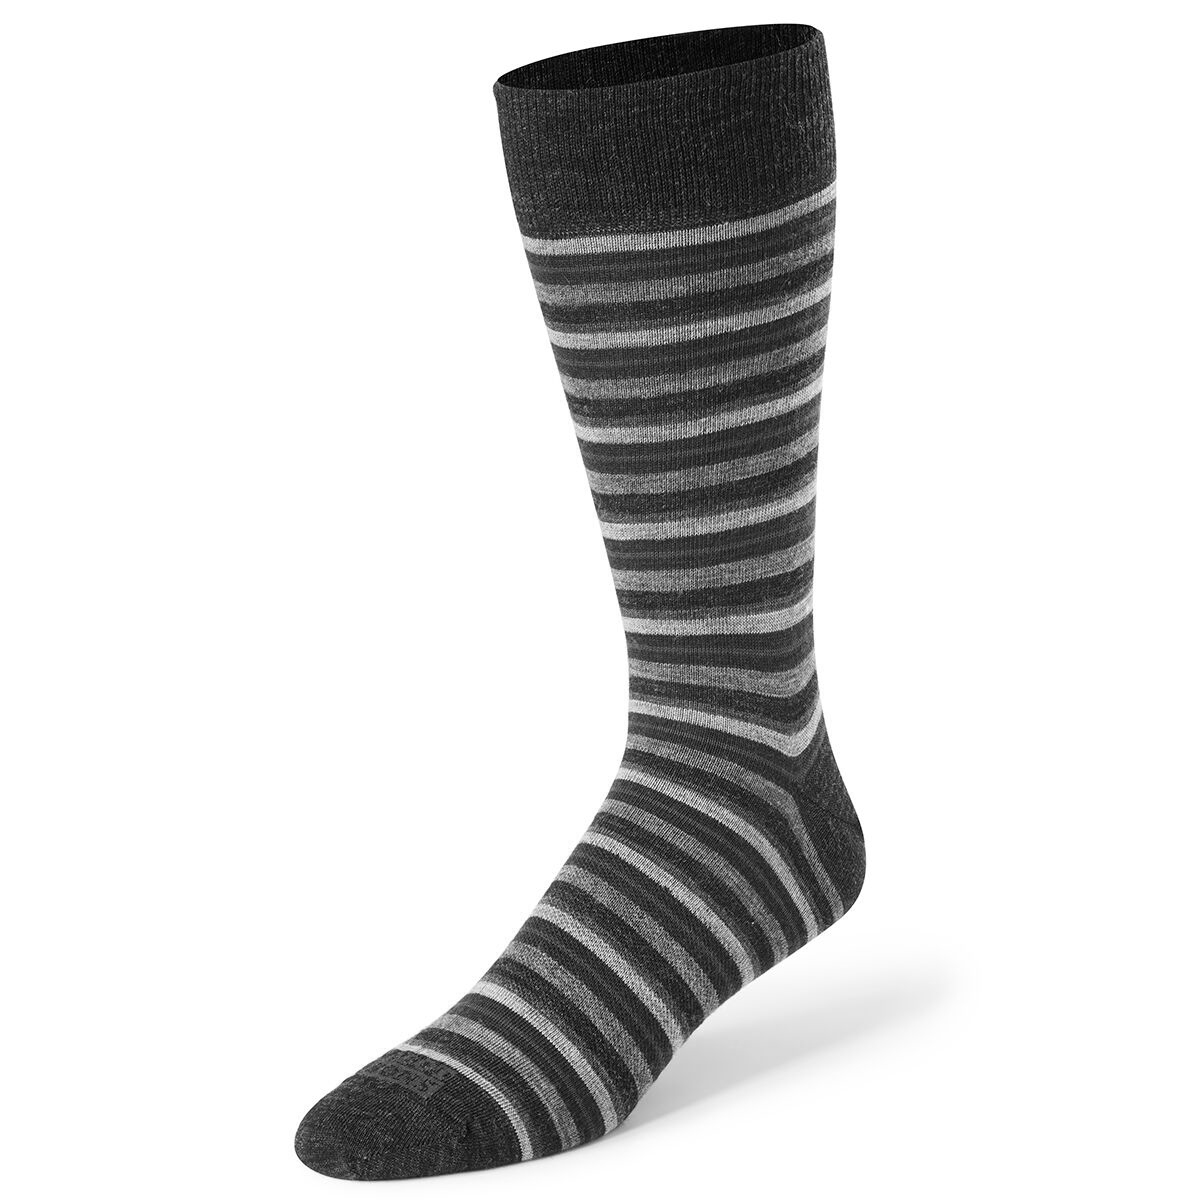 Cabot Men's Multi Stripe Casual Crew Socks - Black, 10-13